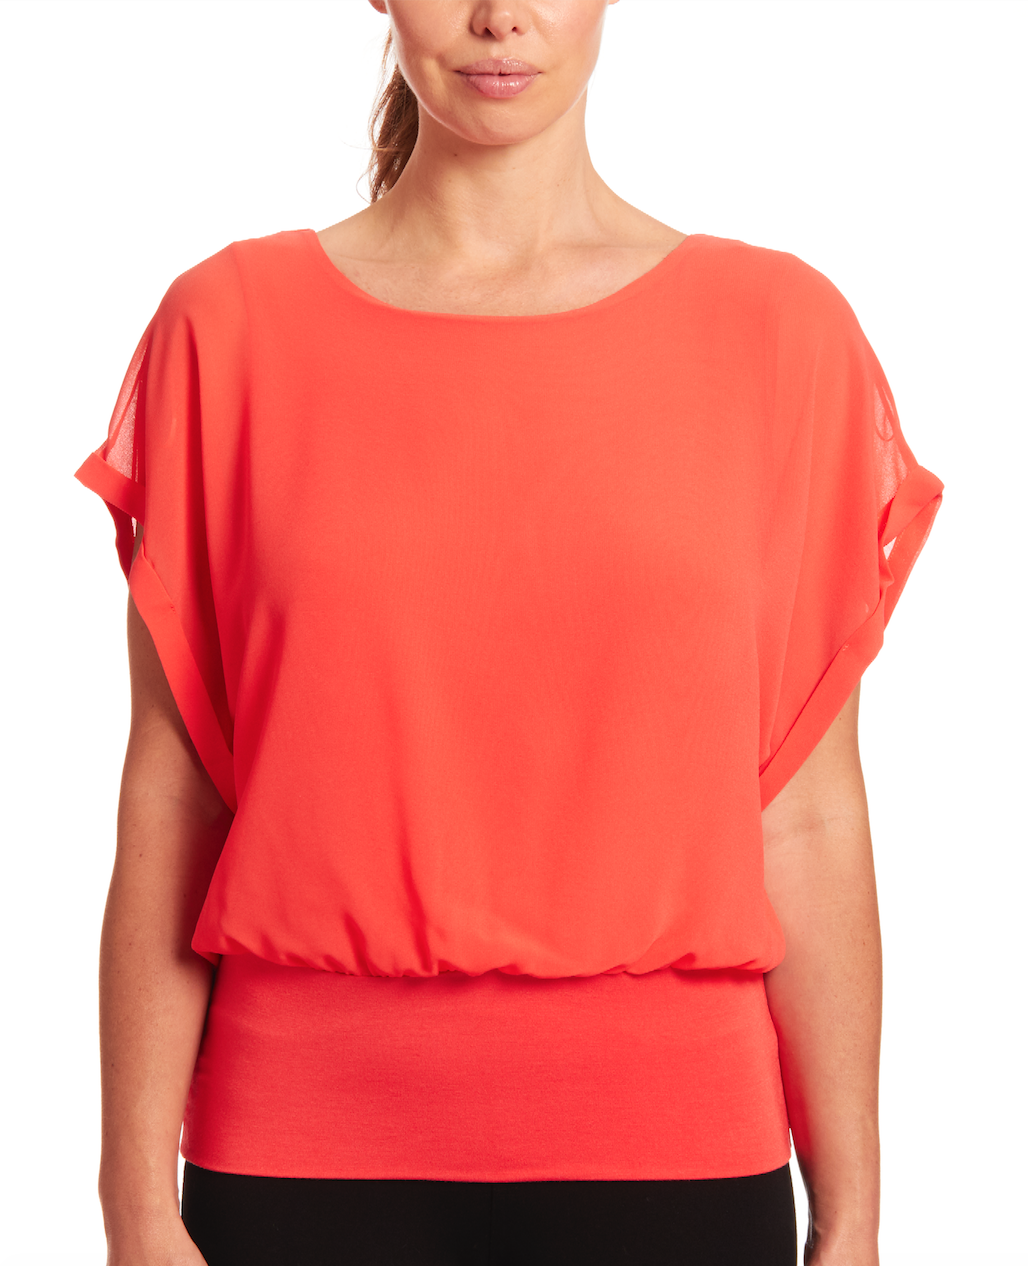 Dolman Short Sleeve Blouse in Coral Reef